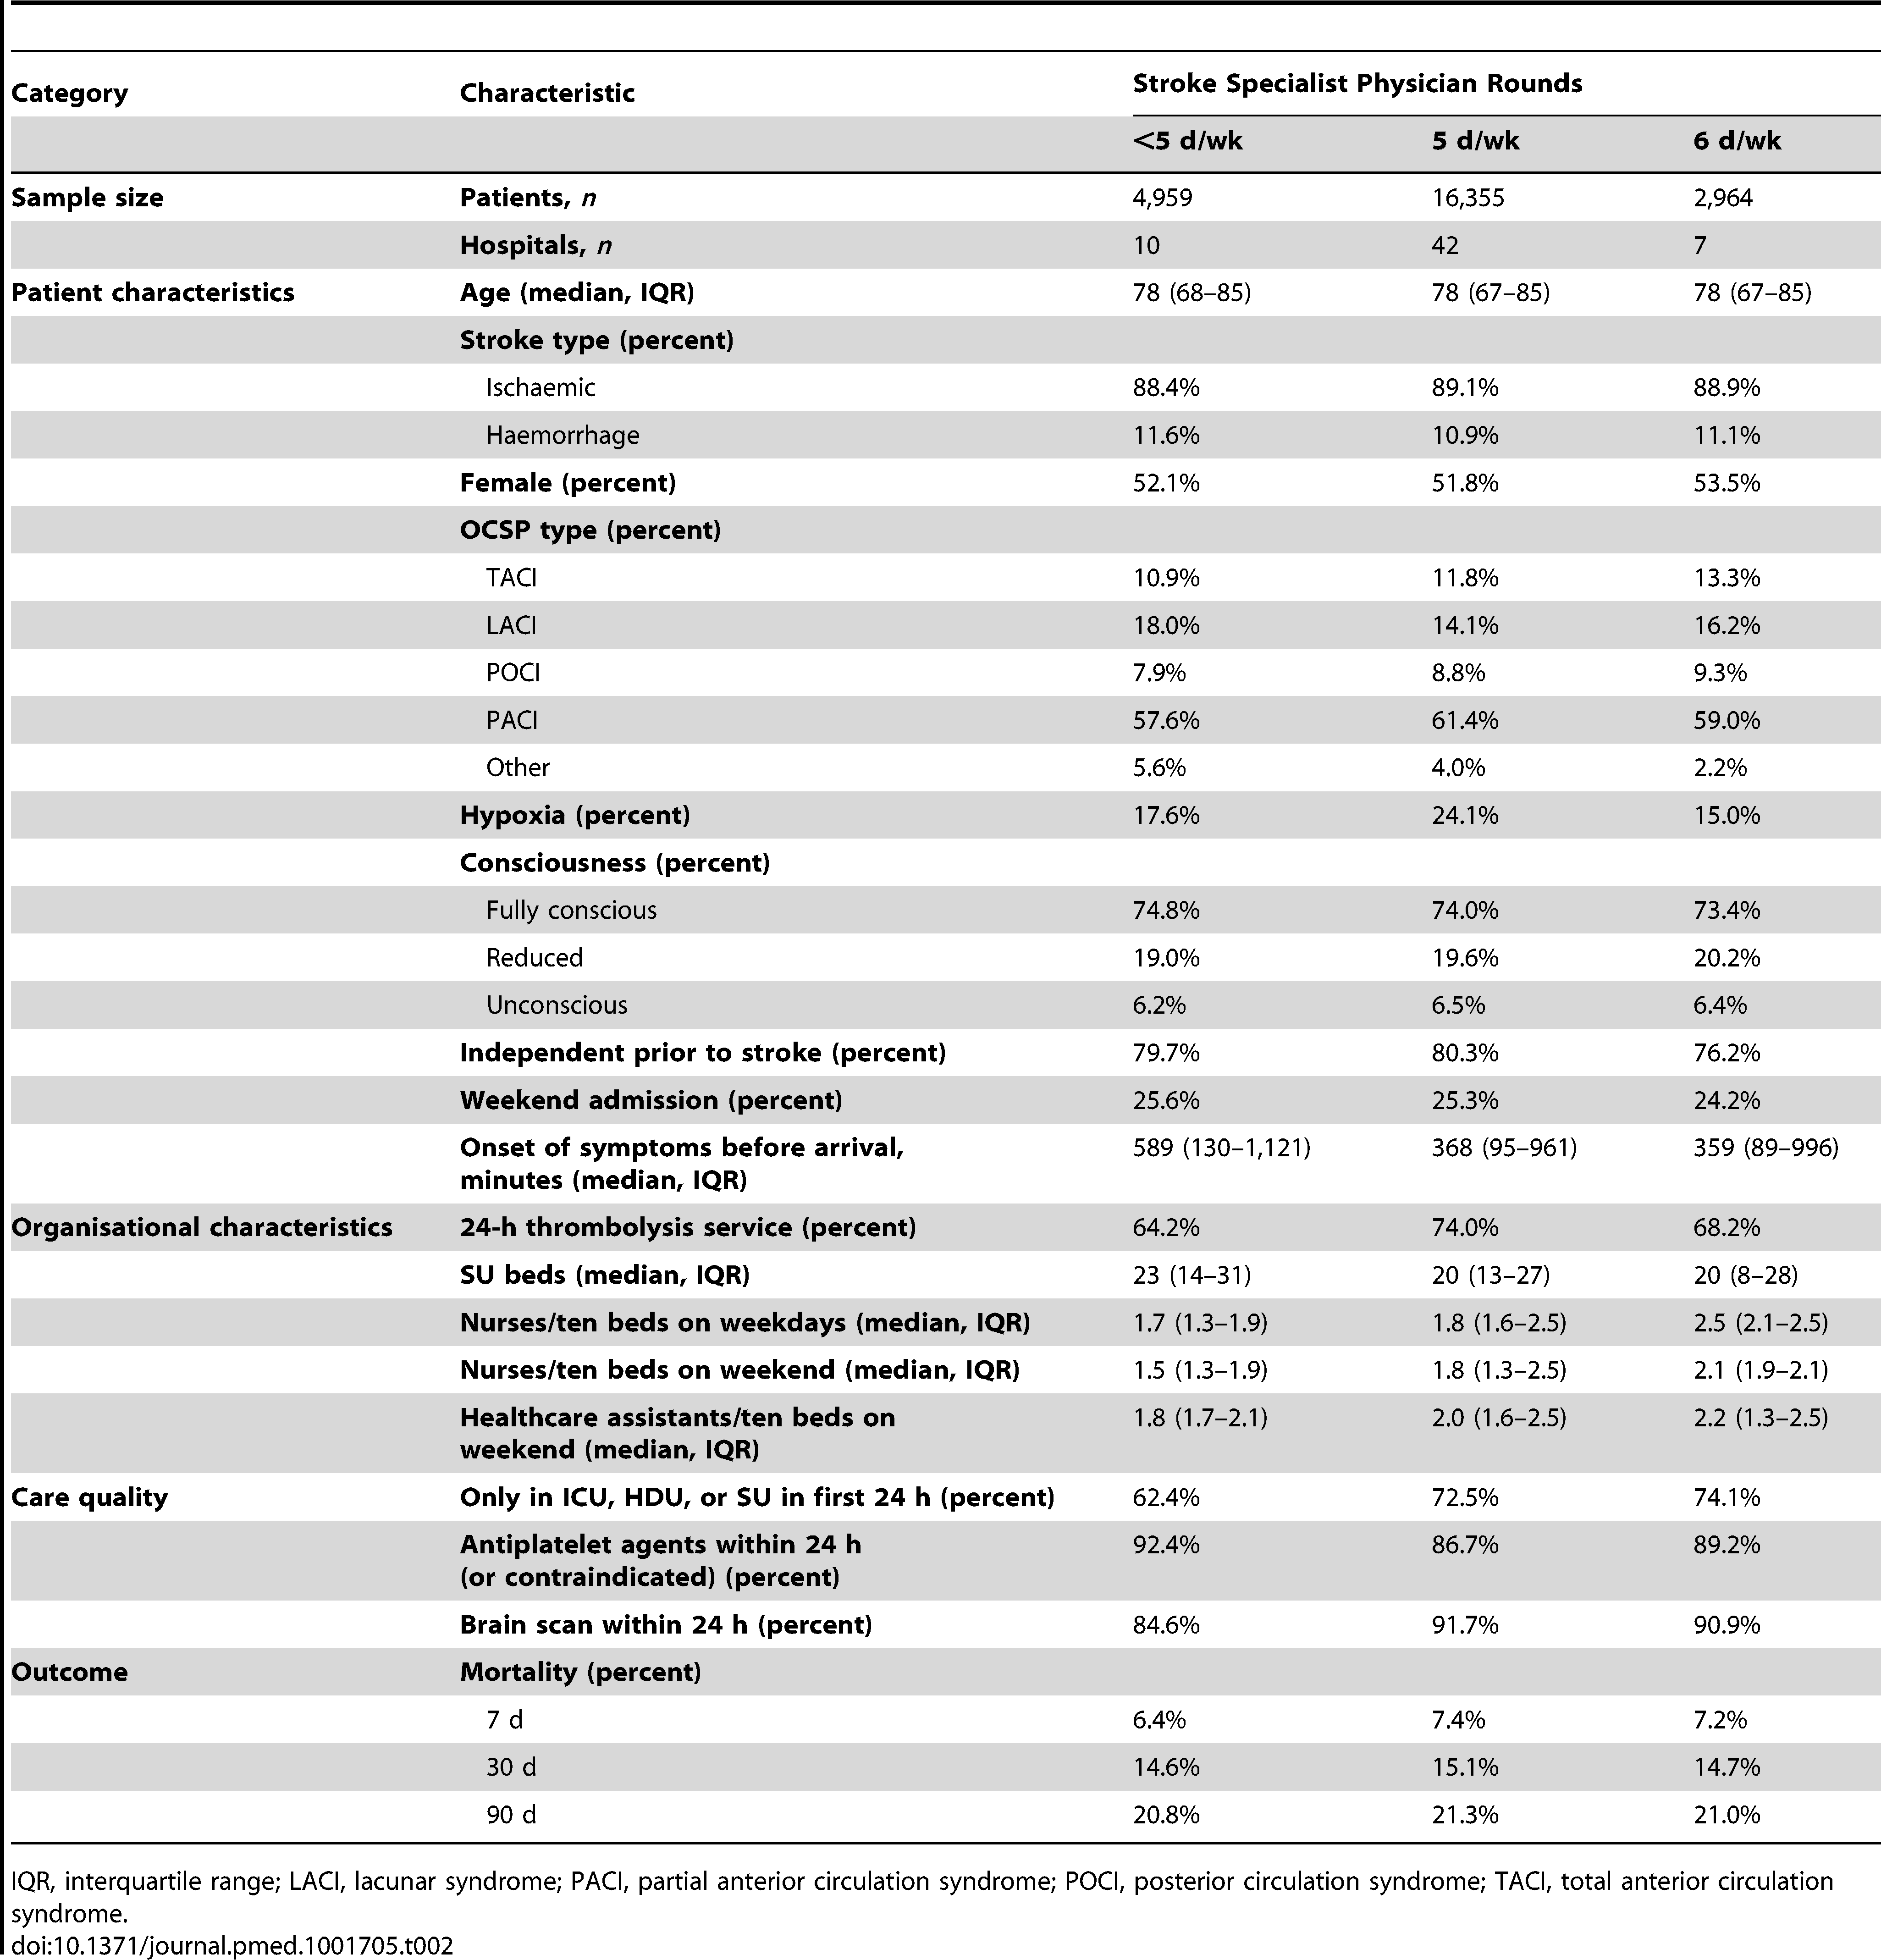 Characteristics of patients and hospitals in SUs with stroke specialist physician rounds <7 d/wk.